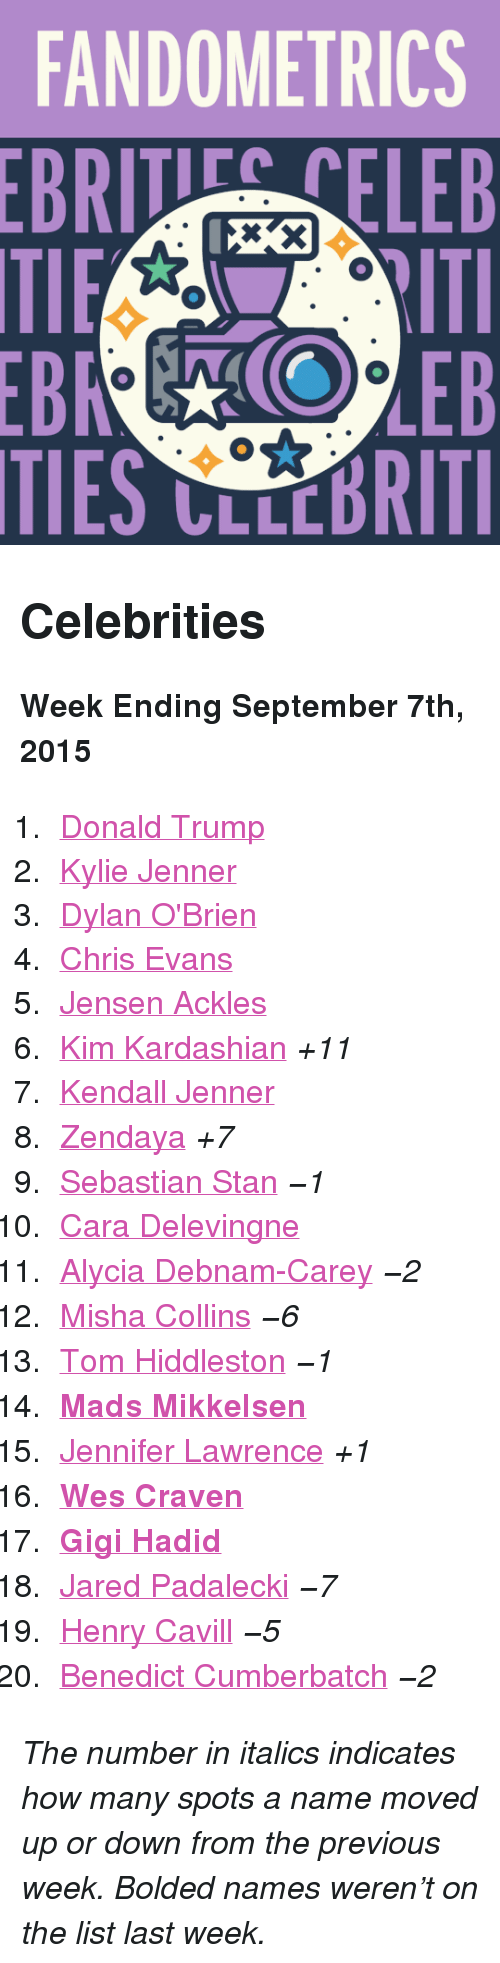 """Search: FANDOMETRICS  BRTELEB  TIES CLLCBRITI <h2>Celebrities</h2><p><b>Week Ending September 7th, 2015</b></p><ol><li><a href=""""http://www.tumblr.com/search/donald%20trump"""">Donald Trump</a></li>  <li><a href=""""http://www.tumblr.com/search/kylie%20jenner"""">Kylie Jenner</a></li>  <li><a href=""""http://www.tumblr.com/search/dylan%20o'brien"""">Dylan O'Brien</a></li>  <li><a href=""""http://www.tumblr.com/search/chris%20evans"""">Chris Evans</a></li>  <li><a href=""""http://www.tumblr.com/search/jensen%20ackles"""">Jensen Ackles</a></li>  <li><a href=""""http://www.tumblr.com/search/kim%20kardashian"""">Kim Kardashian</a><i>+11</i></li>  <li><a href=""""http://www.tumblr.com/search/kendall%20jenner"""">Kendall Jenner</a></li>  <li><a href=""""http://www.tumblr.com/search/zendaya"""">Zendaya</a><i>+7</i></li>  <li><a href=""""http://www.tumblr.com/search/sebastian%20stan"""">Sebastian Stan</a><i>−1</i></li>  <li><a href=""""http://www.tumblr.com/search/cara%20delevingne"""">Cara Delevingne</a></li>  <li><a href=""""http://www.tumblr.com/search/alycia%20debnam%20carey"""">Alycia Debnam-Carey</a><i>−2</i></li>  <li><a href=""""http://www.tumblr.com/search/misha%20collins"""">Misha Collins</a><i>−6</i></li>  <li><a href=""""http://www.tumblr.com/search/tom%20hiddleston"""">Tom Hiddleston</a><i>−1</i></li>  <li><a href=""""http://www.tumblr.com/search/mads%20mikkelsen""""><b>Mads Mikkelsen</b></a></li>  <li><a href=""""http://www.tumblr.com/search/jennifer%20lawrence"""">Jennifer Lawrence</a><i>+1</i></li>  <li><a href=""""http://www.tumblr.com/search/wes%20craven""""><b>Wes Craven</b></a></li>  <li><a href=""""http://www.tumblr.com/search/gigi%20hadid""""><b>Gigi Hadid</b></a></li>  <li><a href=""""http://www.tumblr.com/search/jared%20padalecki"""">Jared Padalecki</a><i>−7</i></li>  <li><a href=""""http://www.tumblr.com/search/henry%20cavill"""">Henry Cavill</a><i>−5</i></li>  <li><a href=""""http://www.tumblr.com/search/benedict%20cumberbatch"""">Benedict Cumberbatch</a><i>−2</i></li></ol><p><i>The number in italics indicates how many spots a name moved up or down from the previo"""